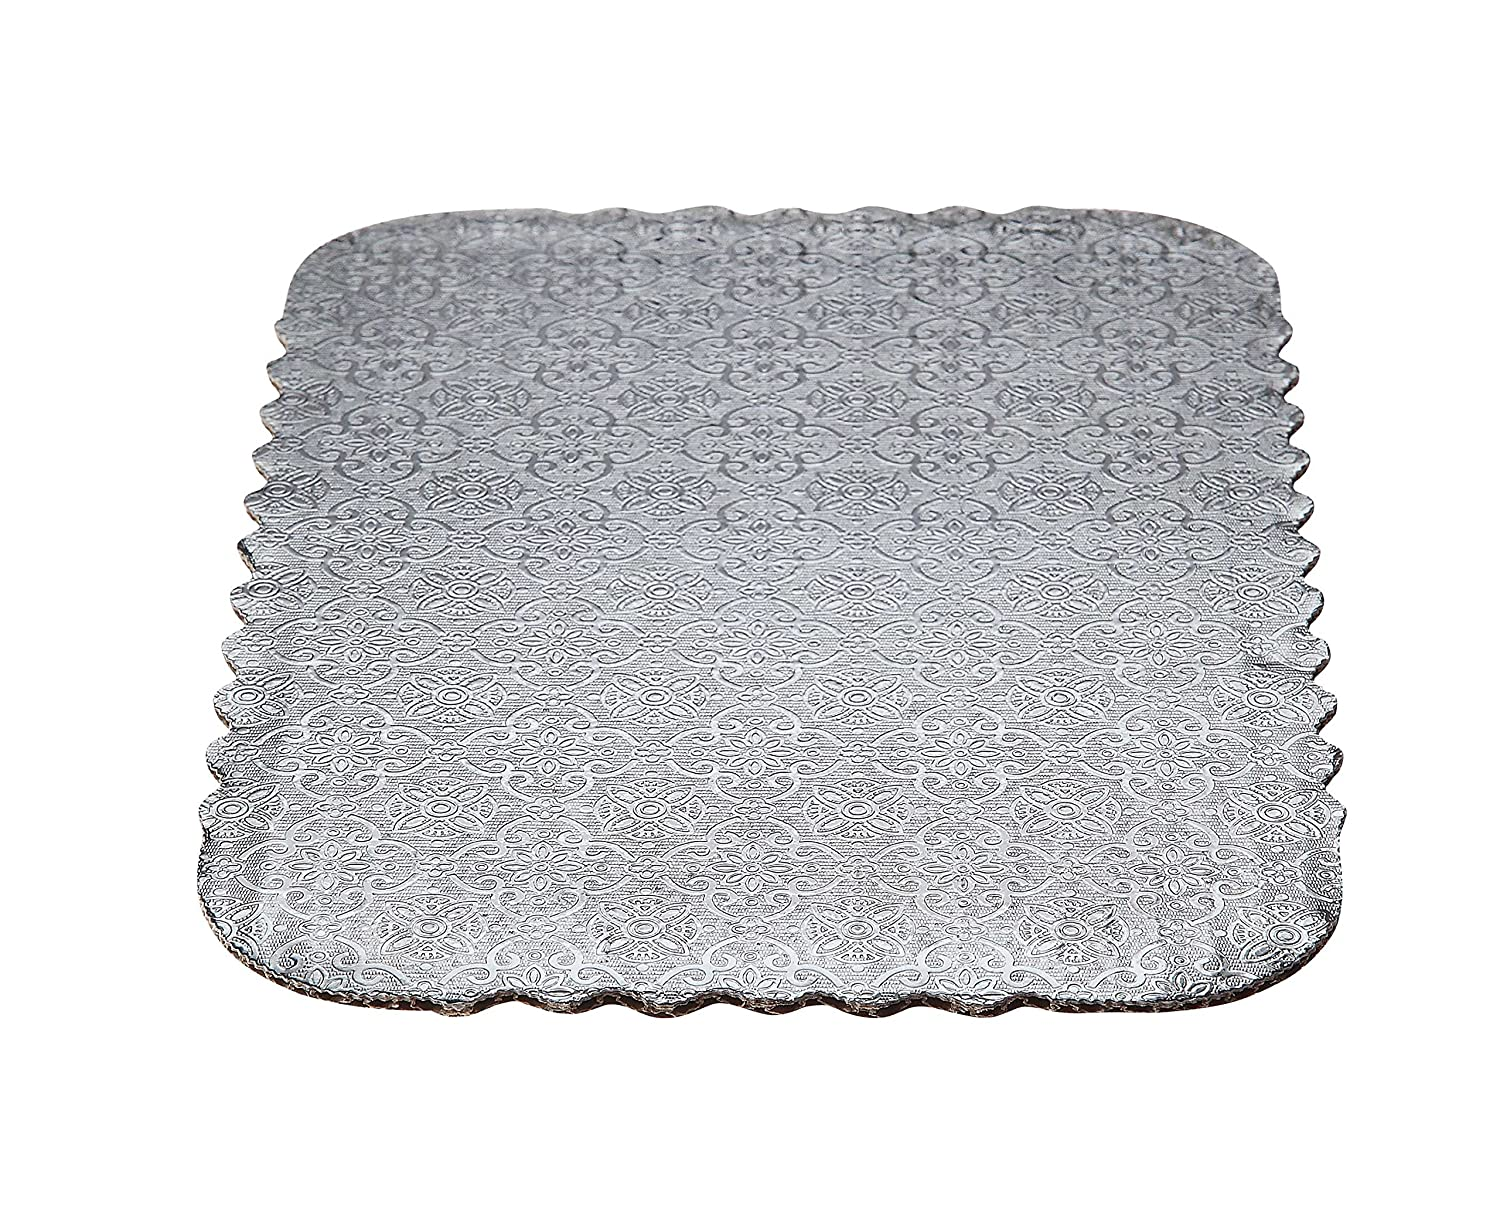 Image of Cake & Pizza Circles W PACKAGING WPSD43100 Full Sheet (26x18) Silver Double Wall Scalloped Edge Cake Pad, Corrugated with Coated Embossed Foil Paper (Pack of 50)